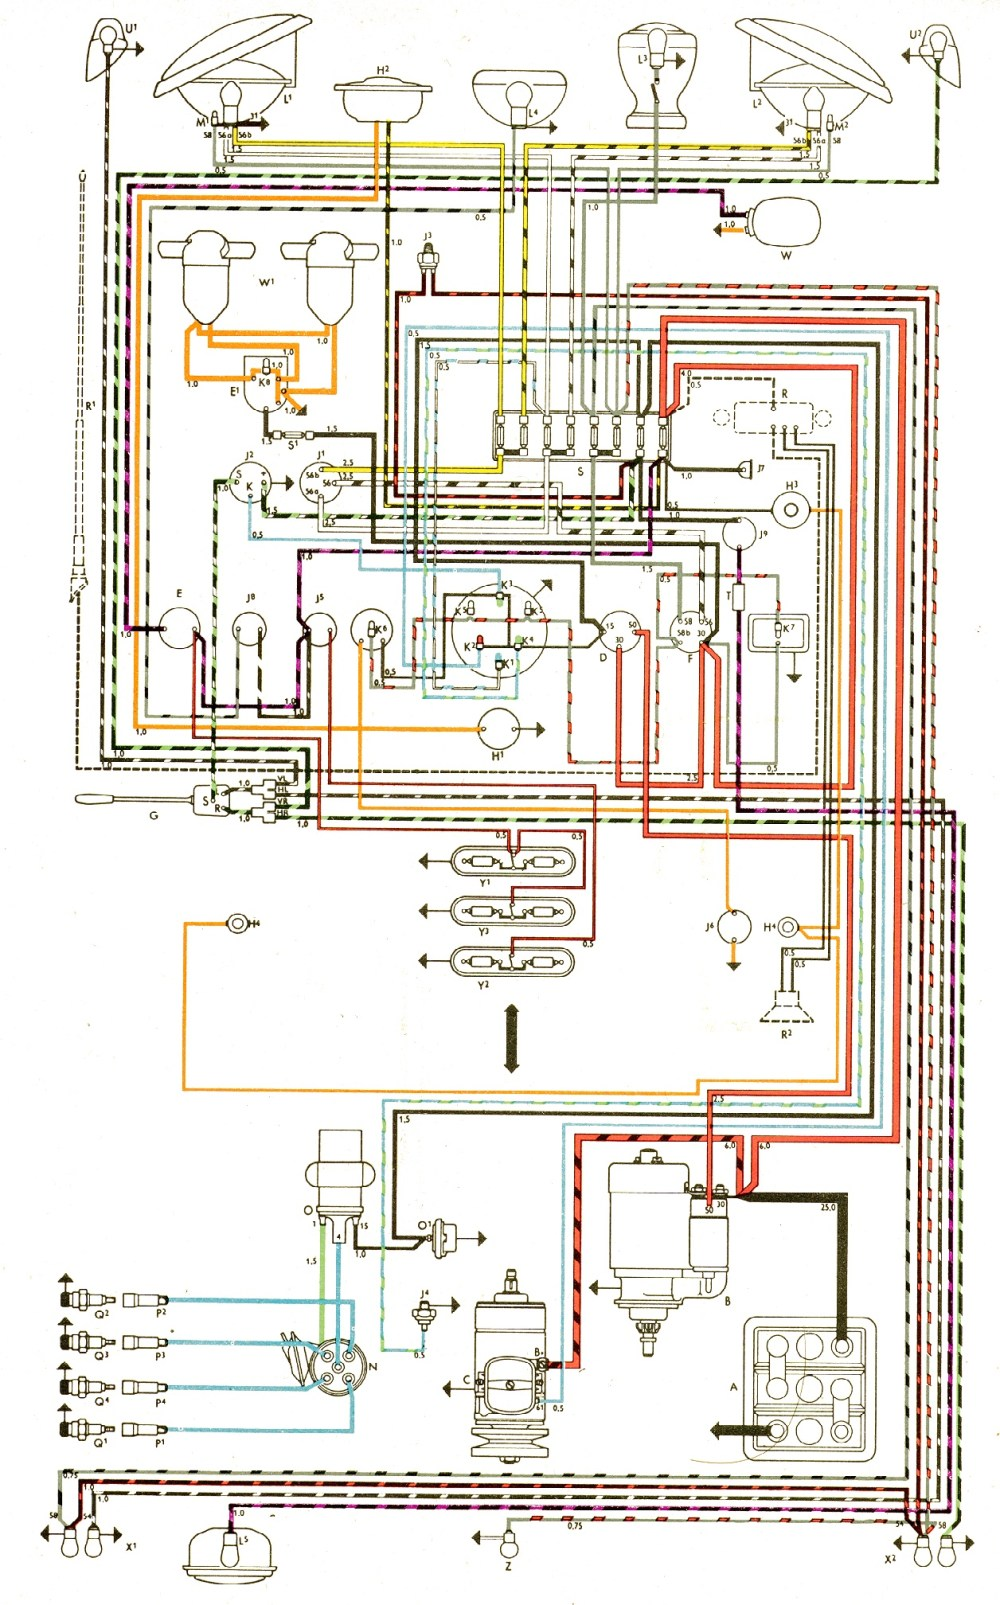 medium resolution of vintagebus com vw bus and other wiring diagrams engine diagram in addition van volkswagen vw bus moreover vw beetle